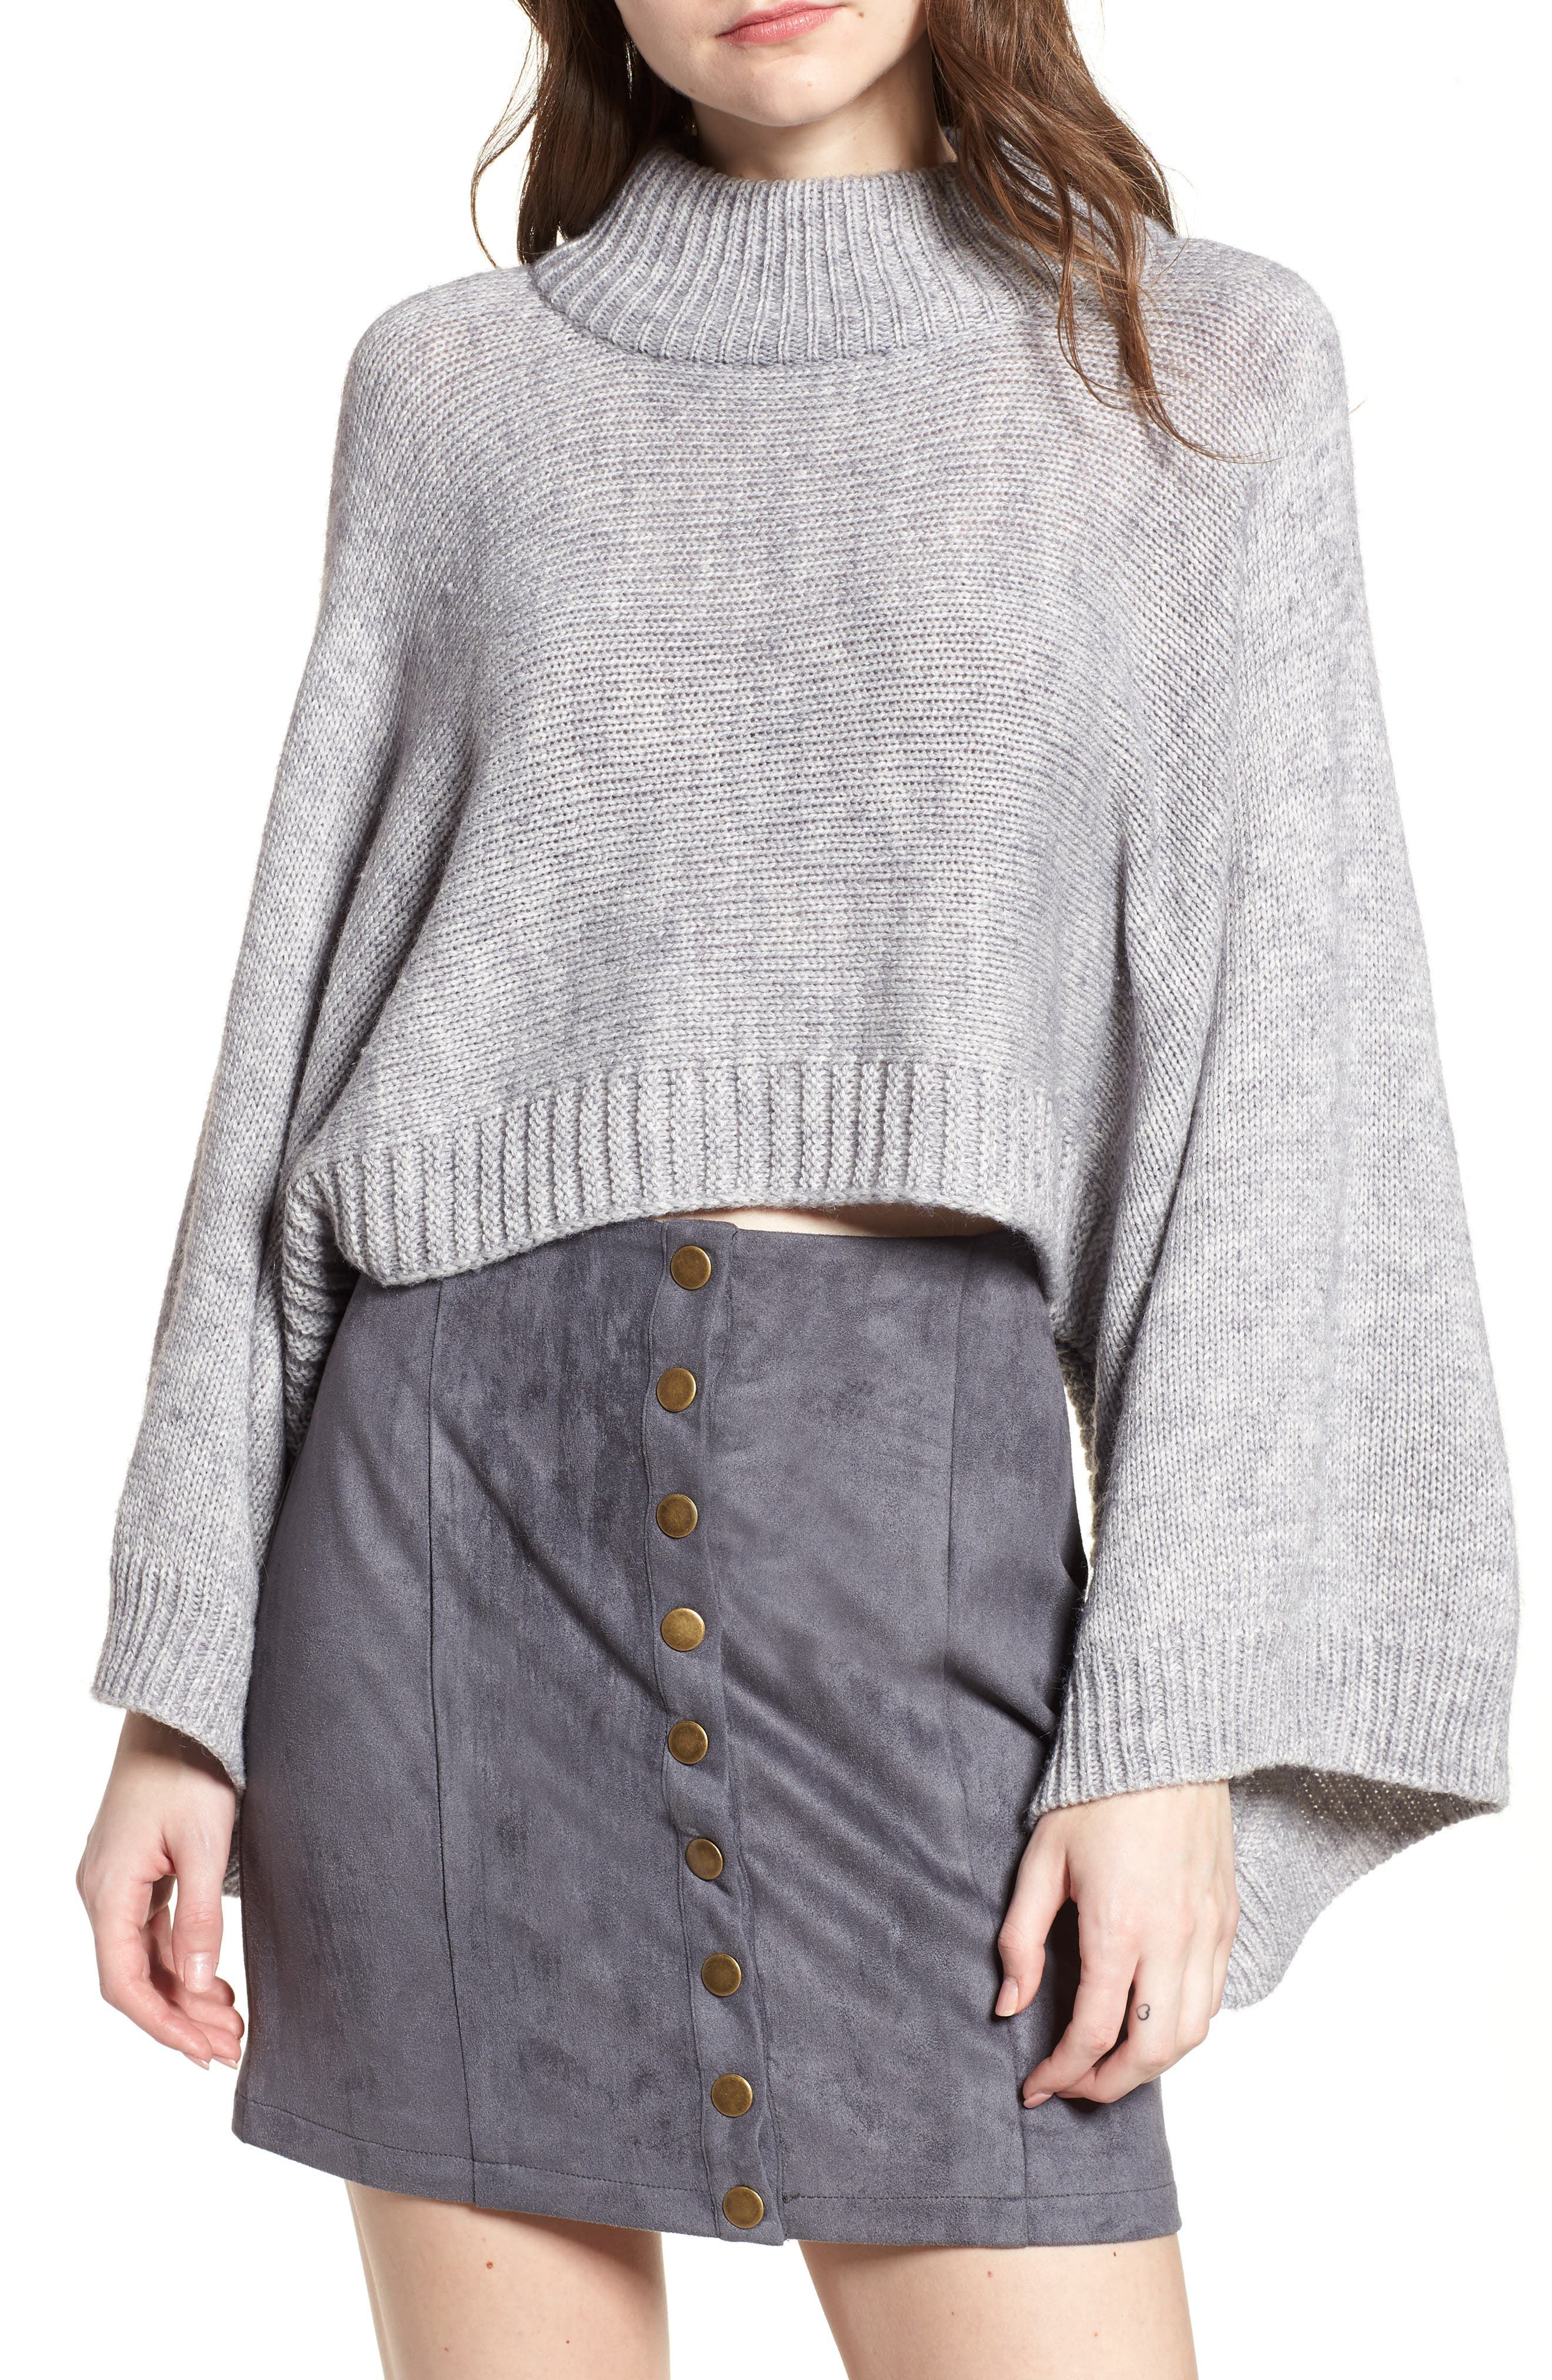 Bishop + Young Olivia Crop Sweater,                         Main,                         color, Grey